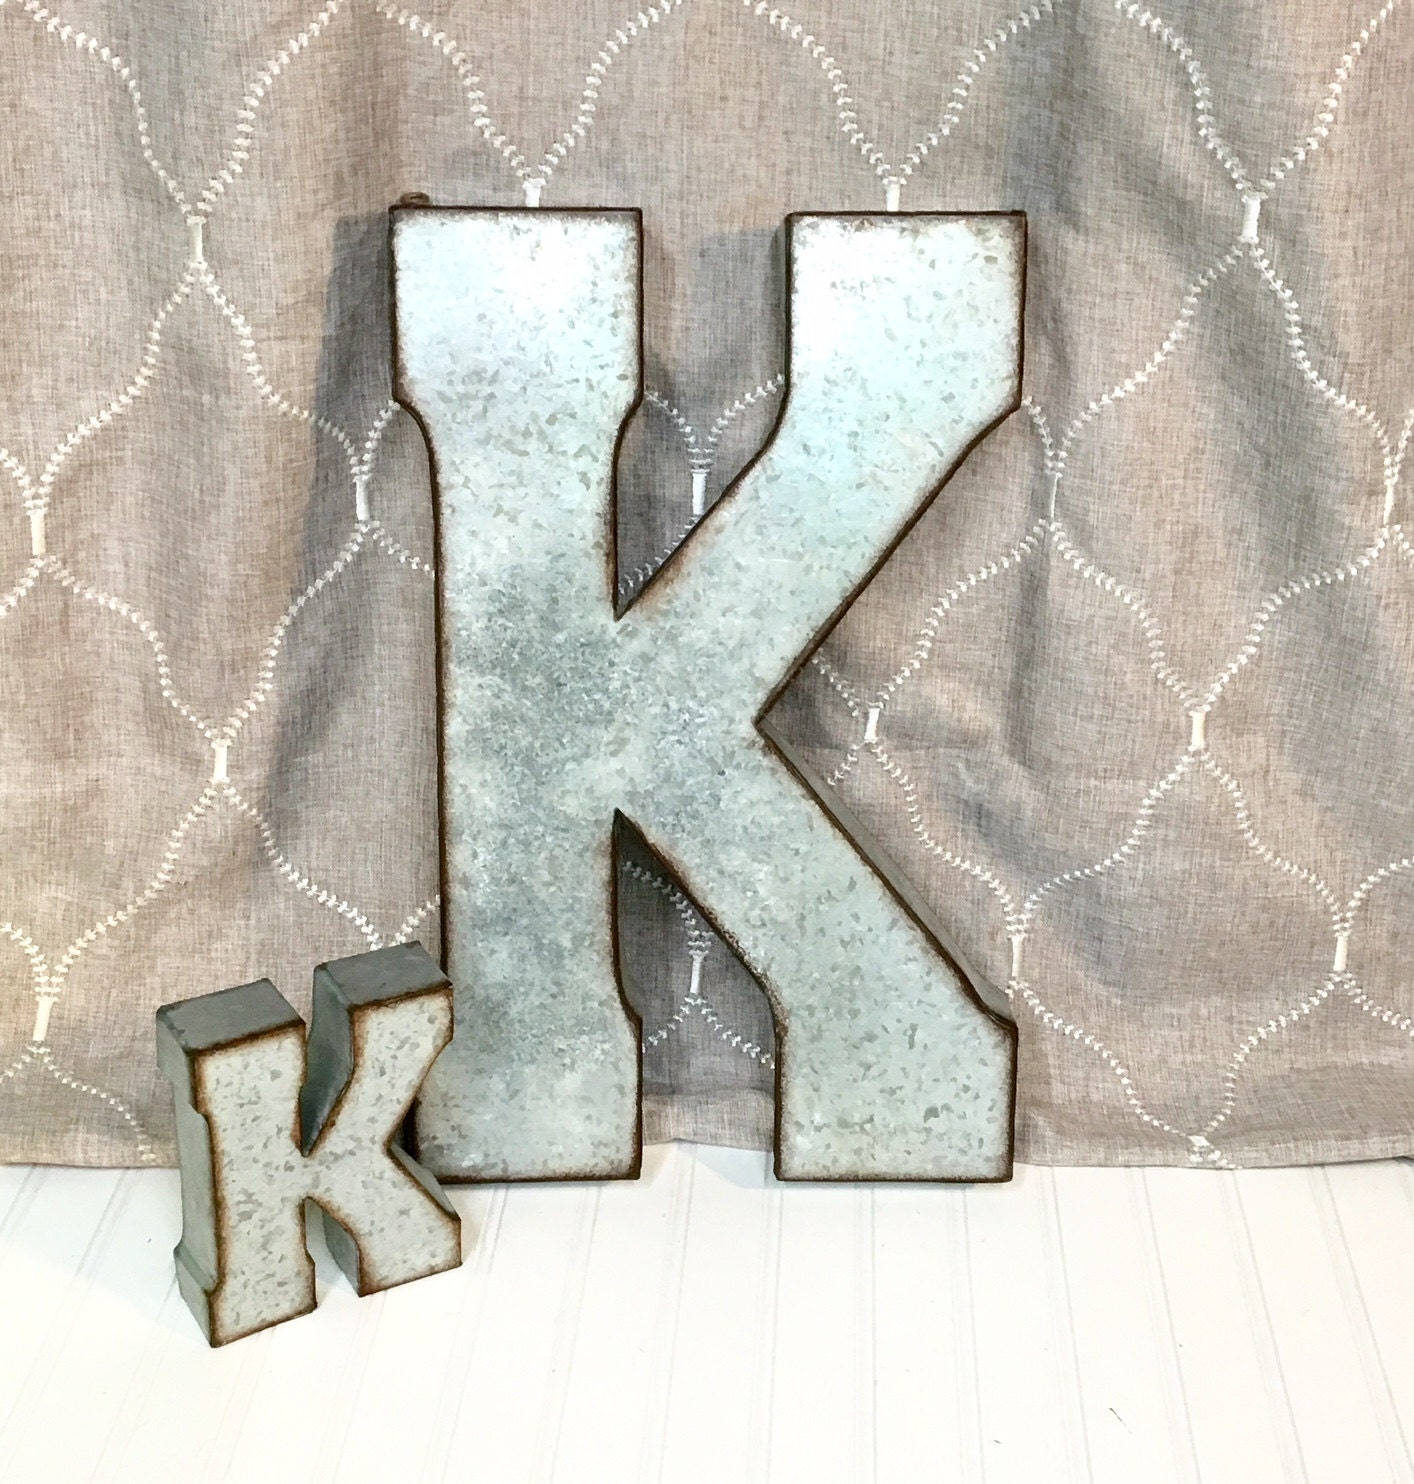 Galvanized Letters For Sale Metal Letterslarge Metal Lettersletter Kgalvanized Metal